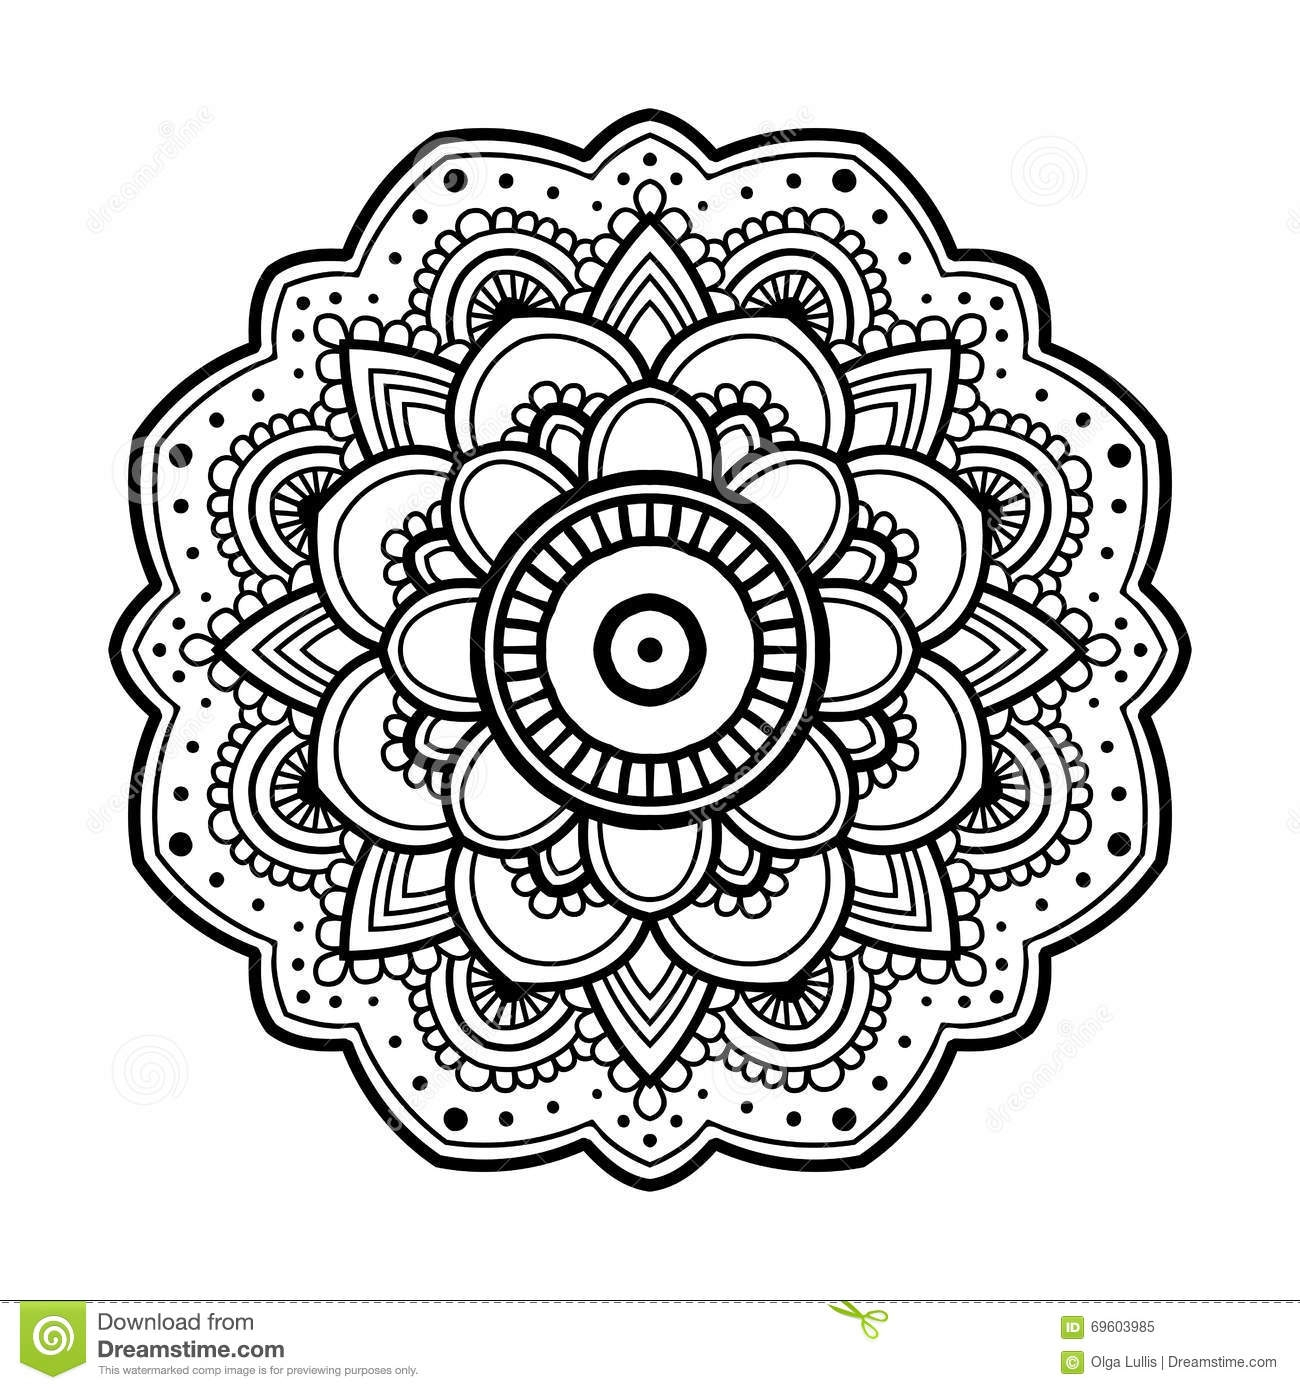 cuss word coloring pages - stock de ilustración mandala floral simple image